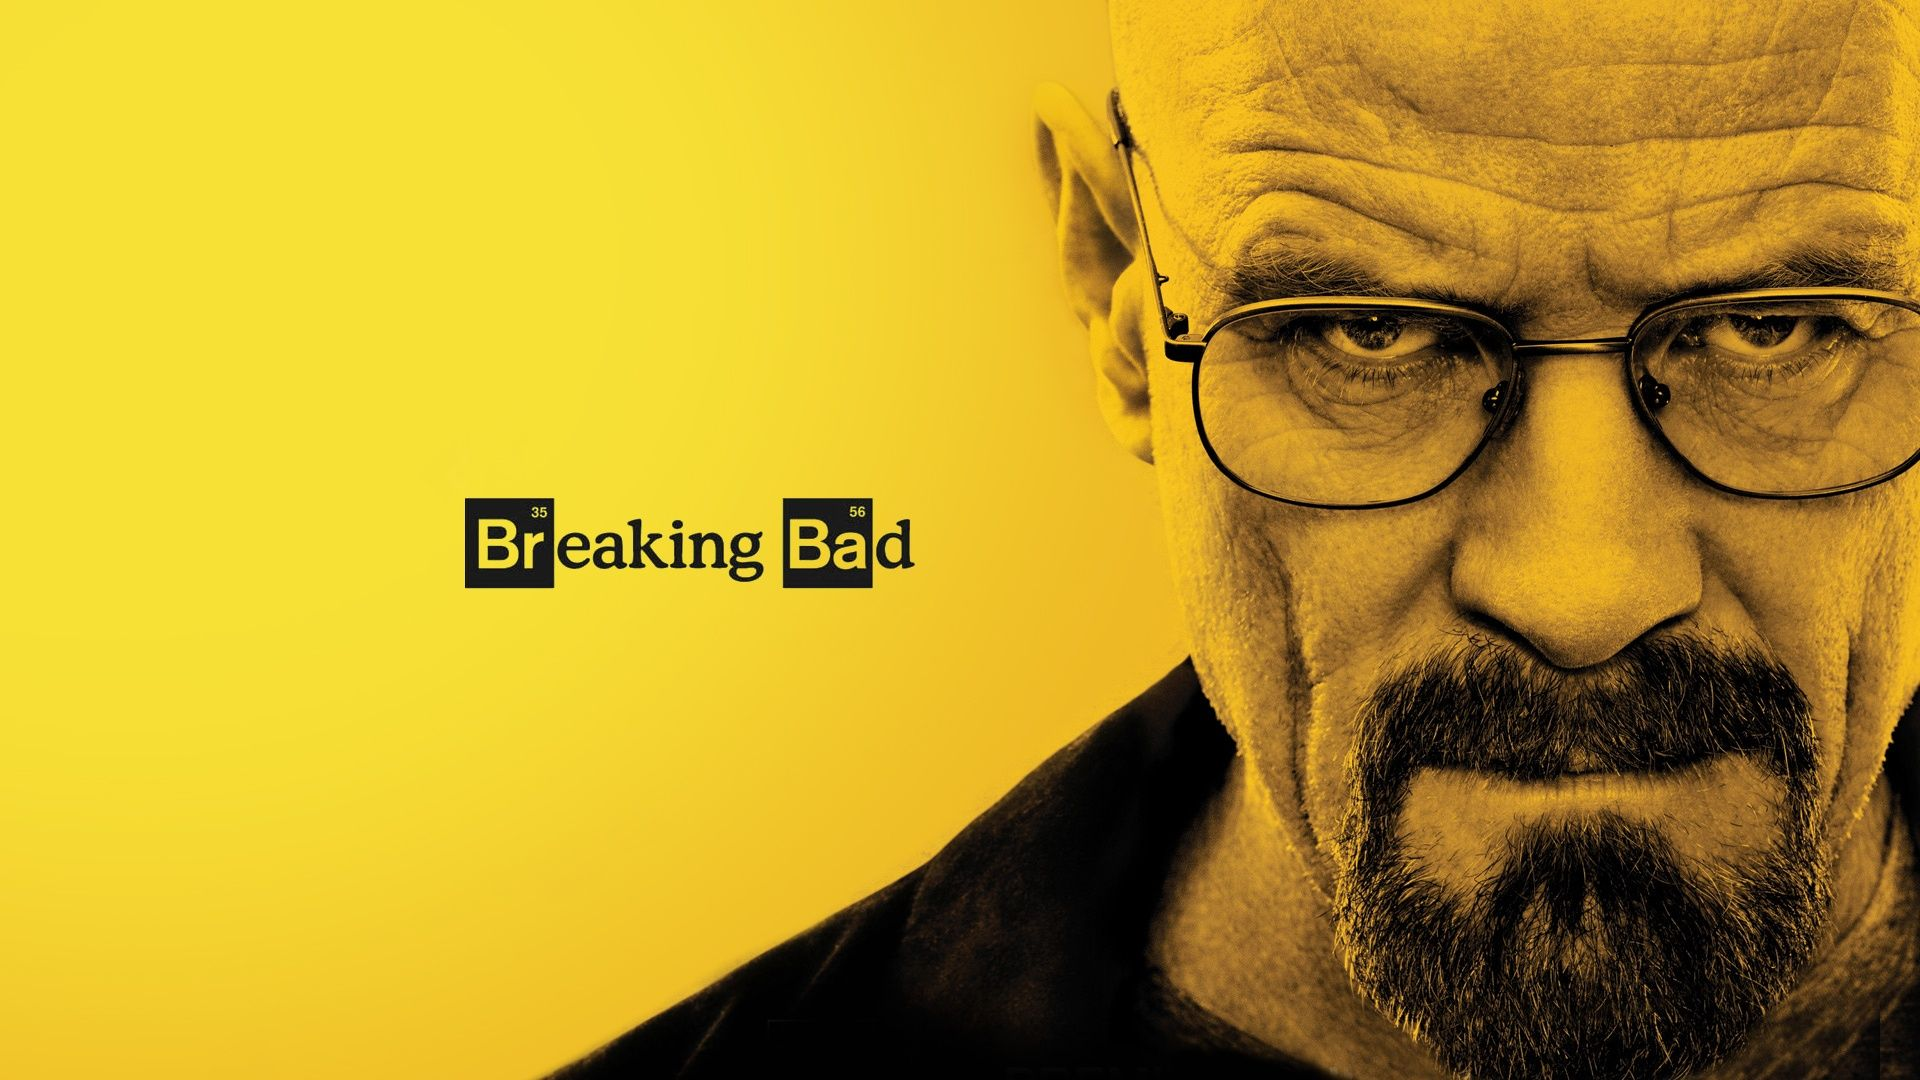 Gradly breaking bad death toll infographic breaking bad is over and walter whites fate is revealed many had their expectations and leading up to the finale triyng to decipher the title felina urtaz Gallery